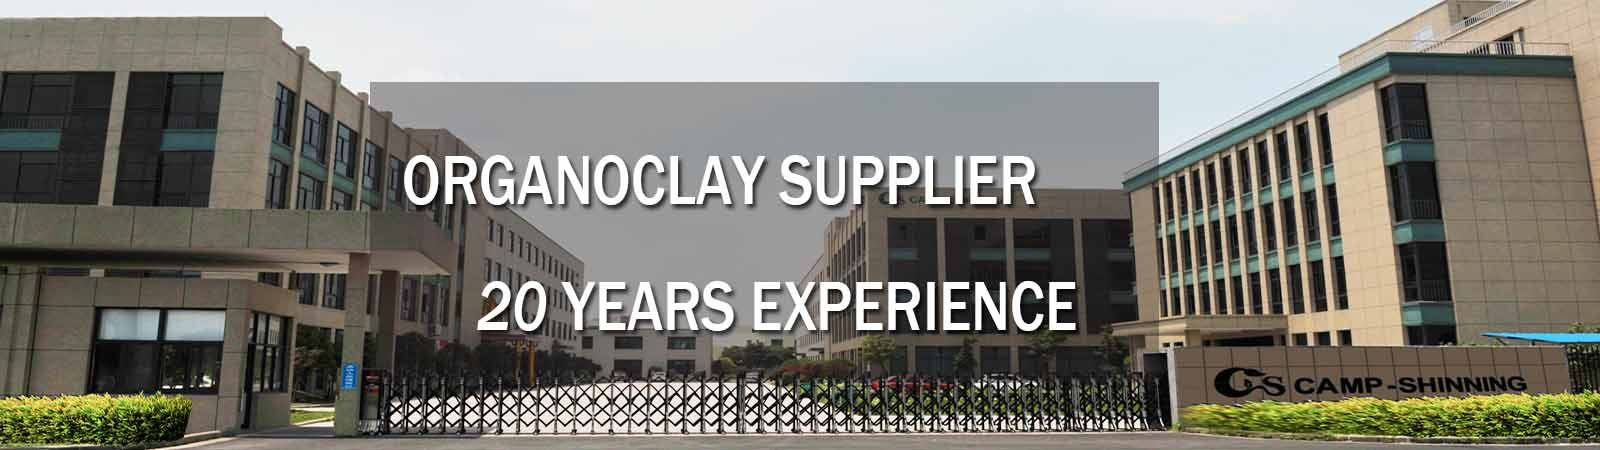 organoclay supplier and manufacturer